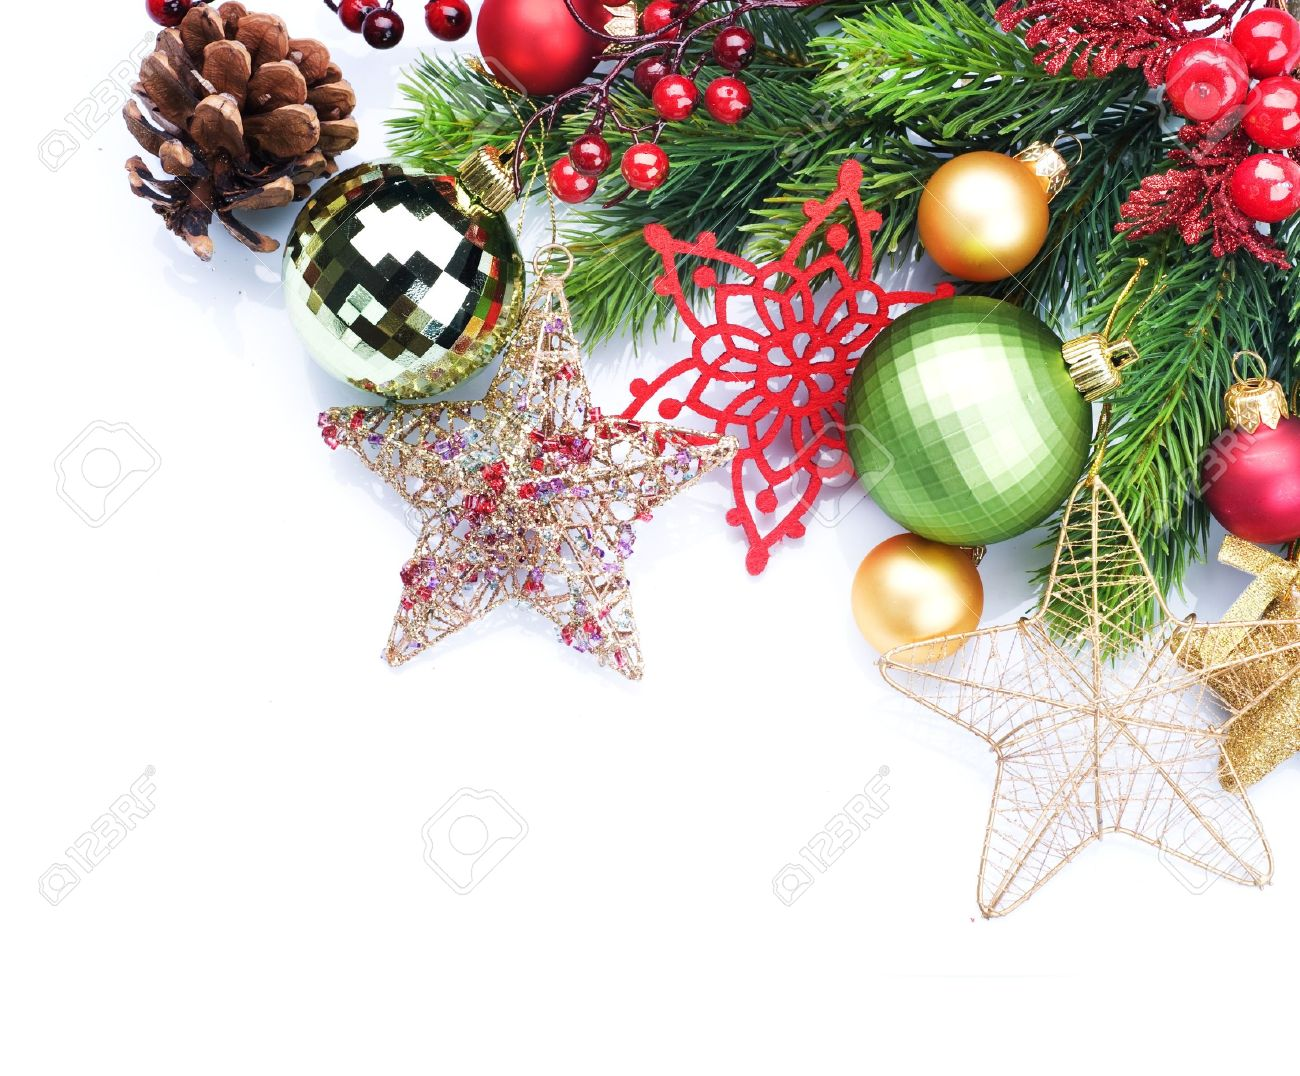 Christmas Decoration Border Design Stock Photo, Picture And Royalty ...